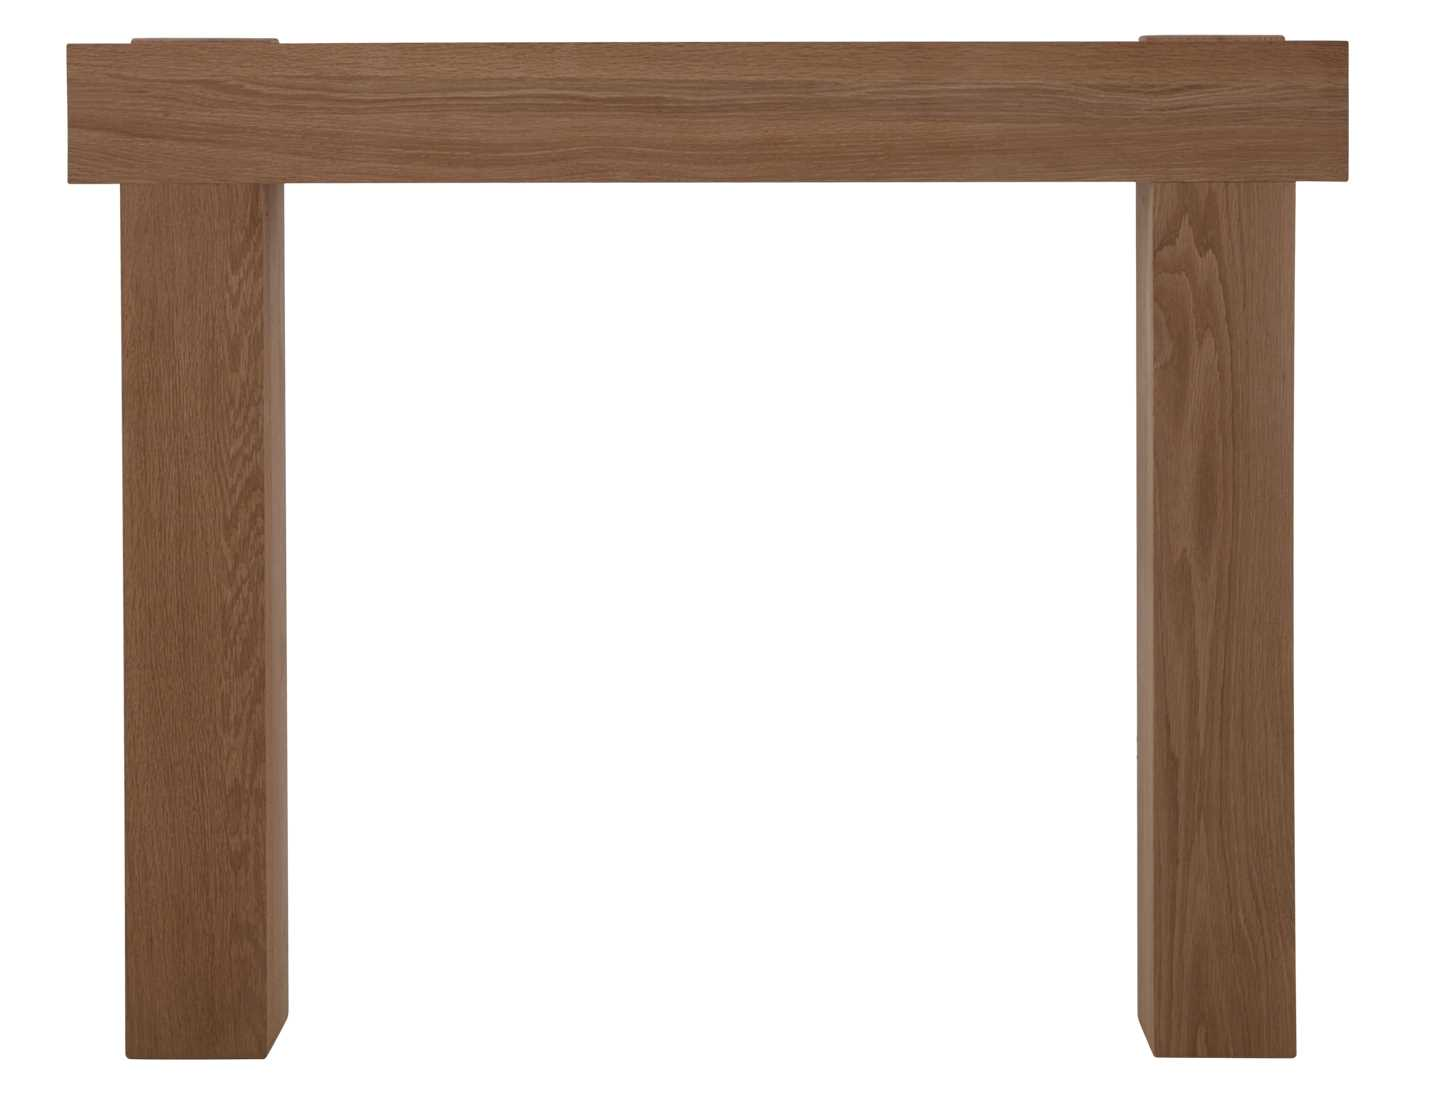 New york solid oak fire surround unwaxed